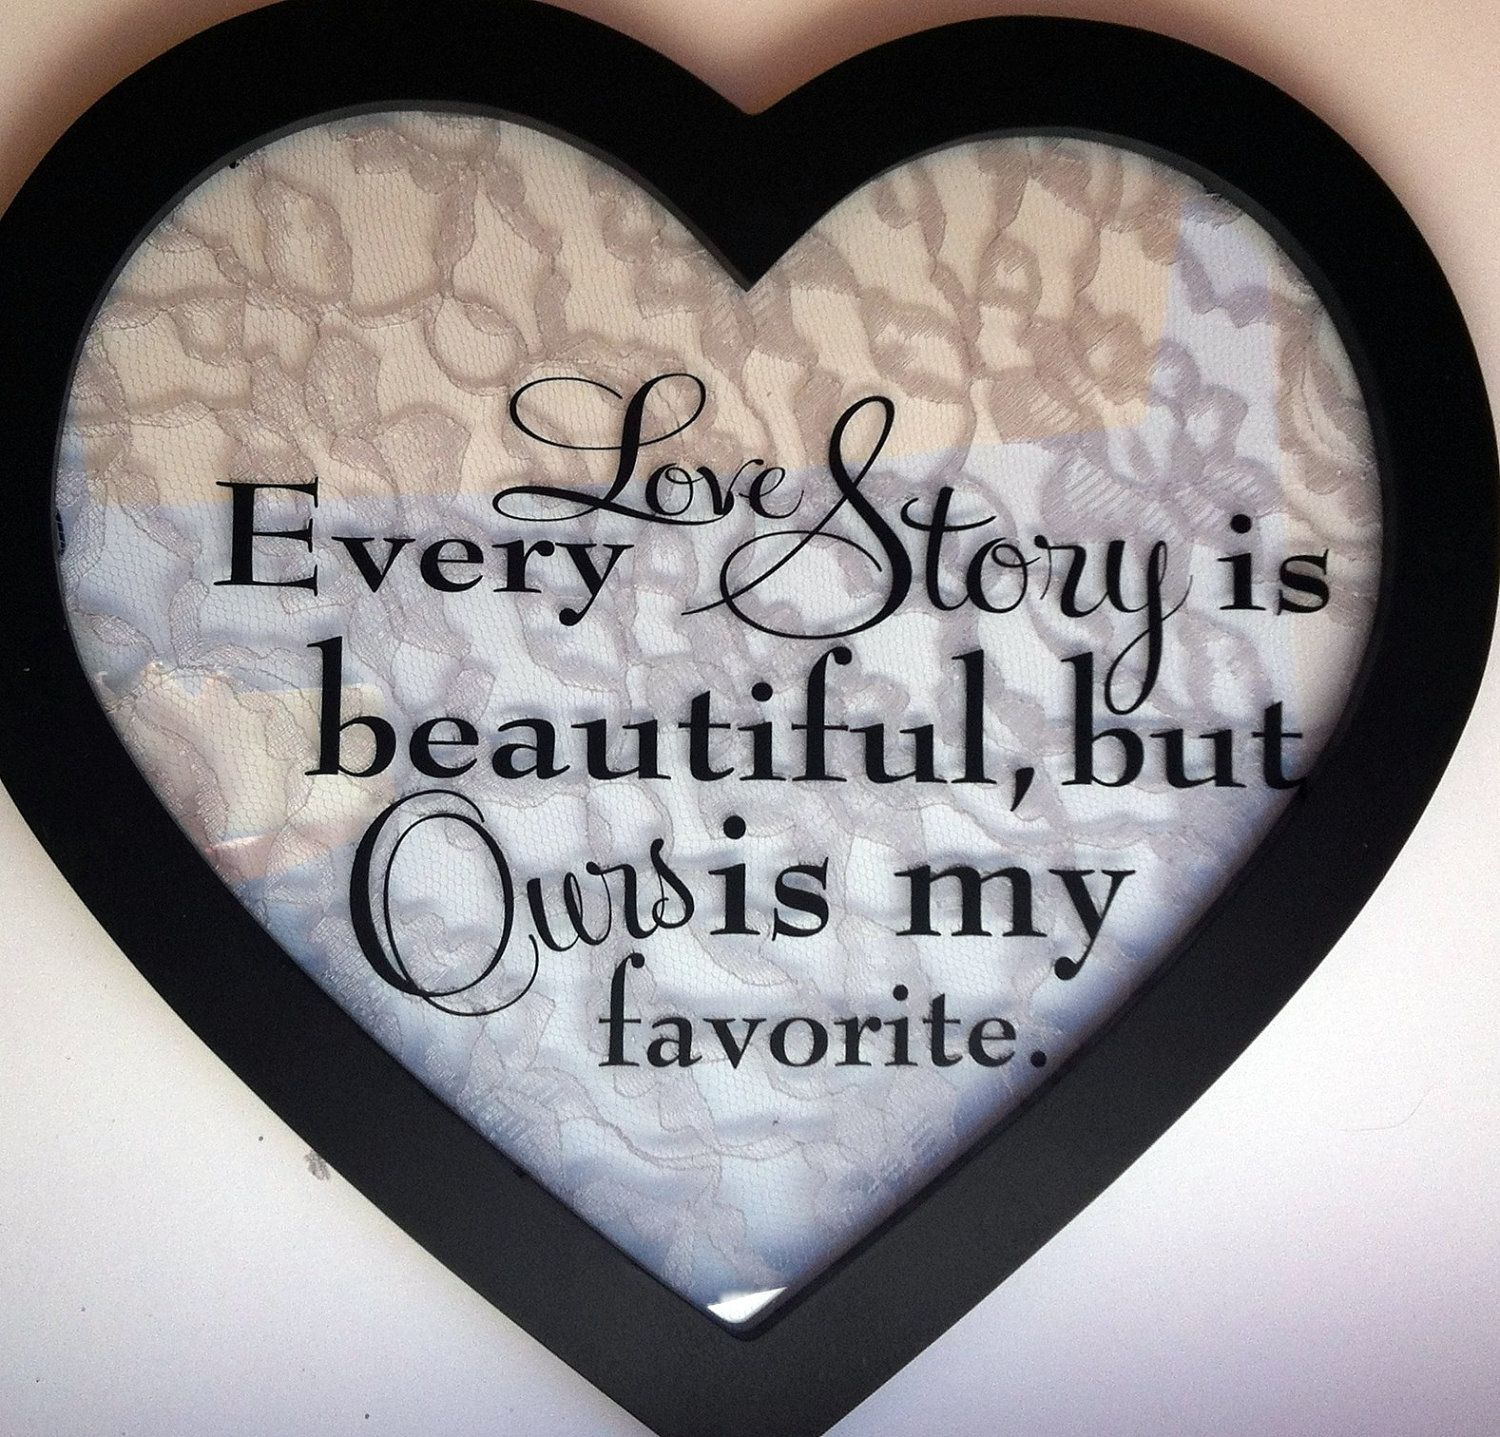 Love Quote Picture Frames Love Story Quote Wall Decor In Heart Shape Frame$20.00 Via Etsy